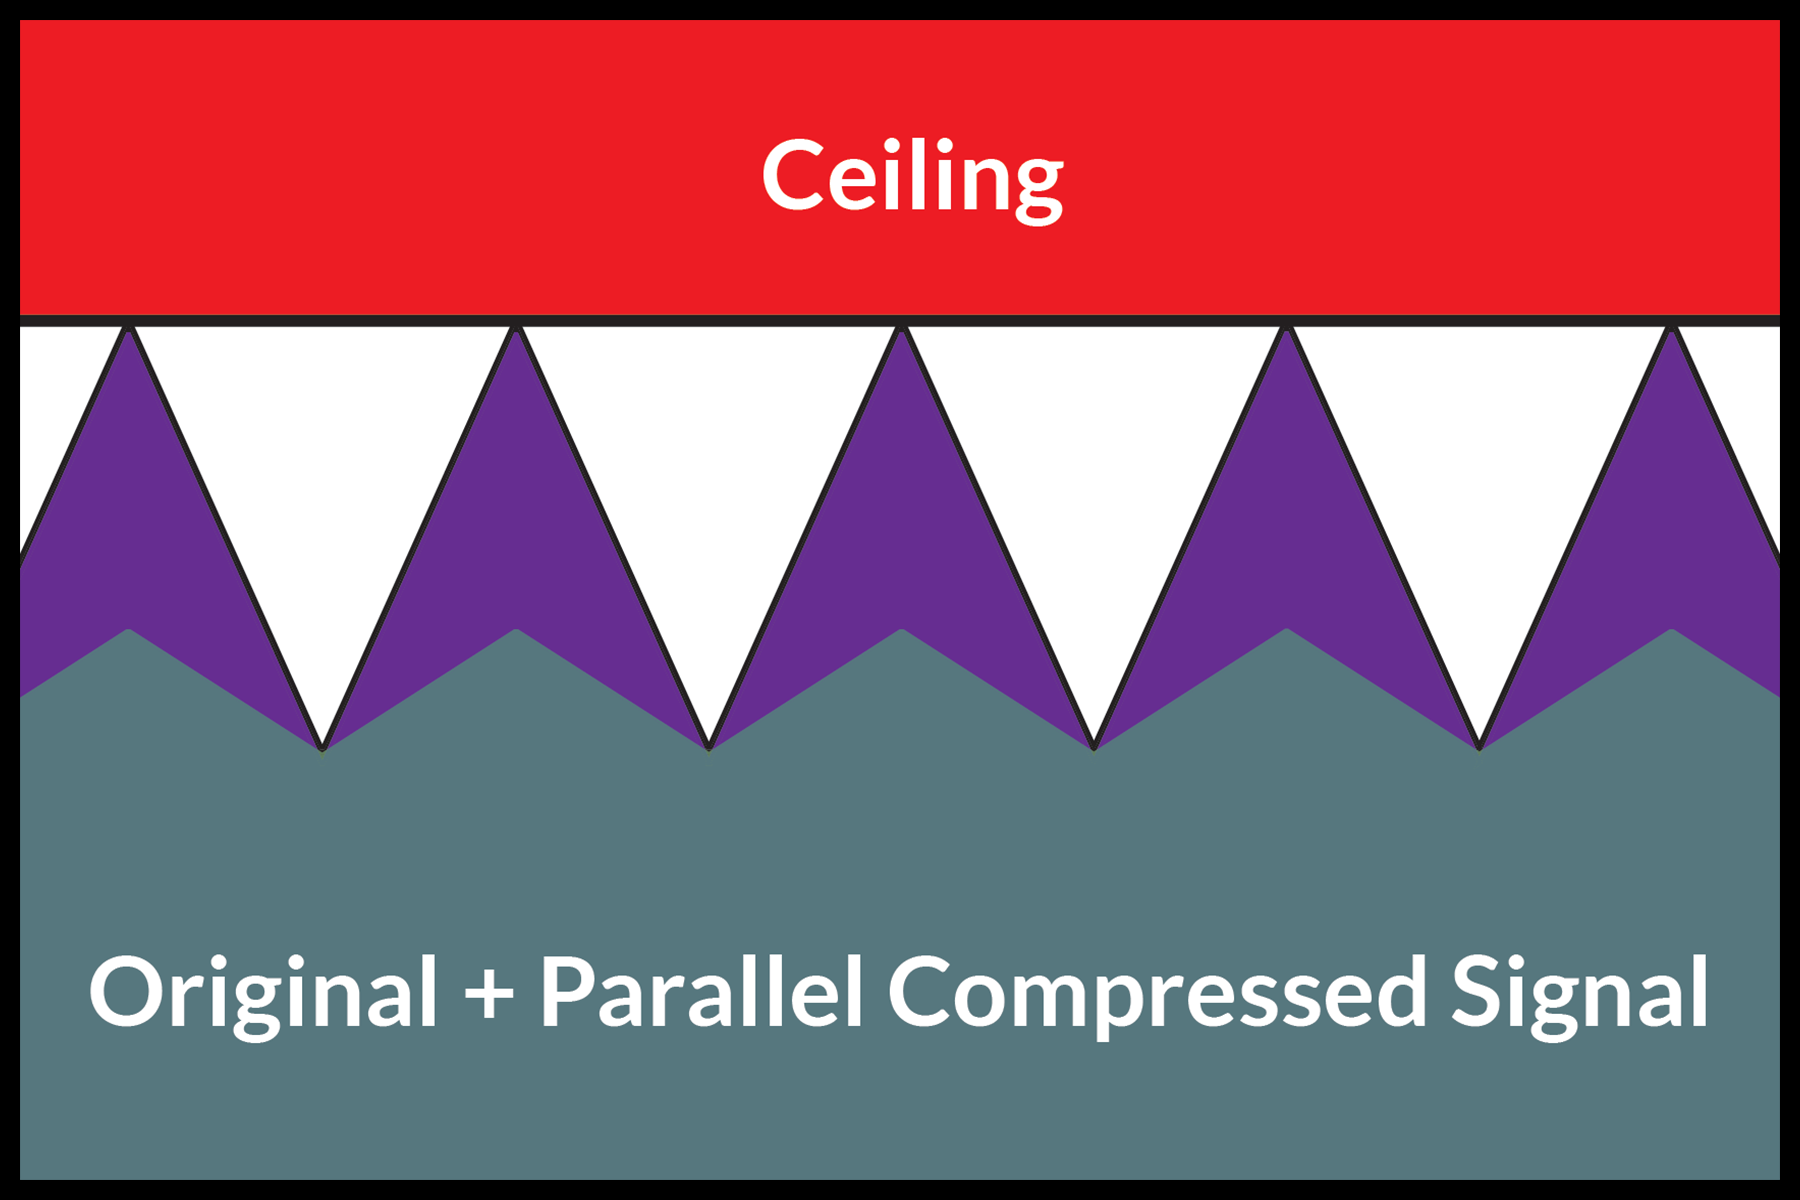 An image of a dynamic audio signal peaking at digital maximum, mixed with a parallel compressed signal.